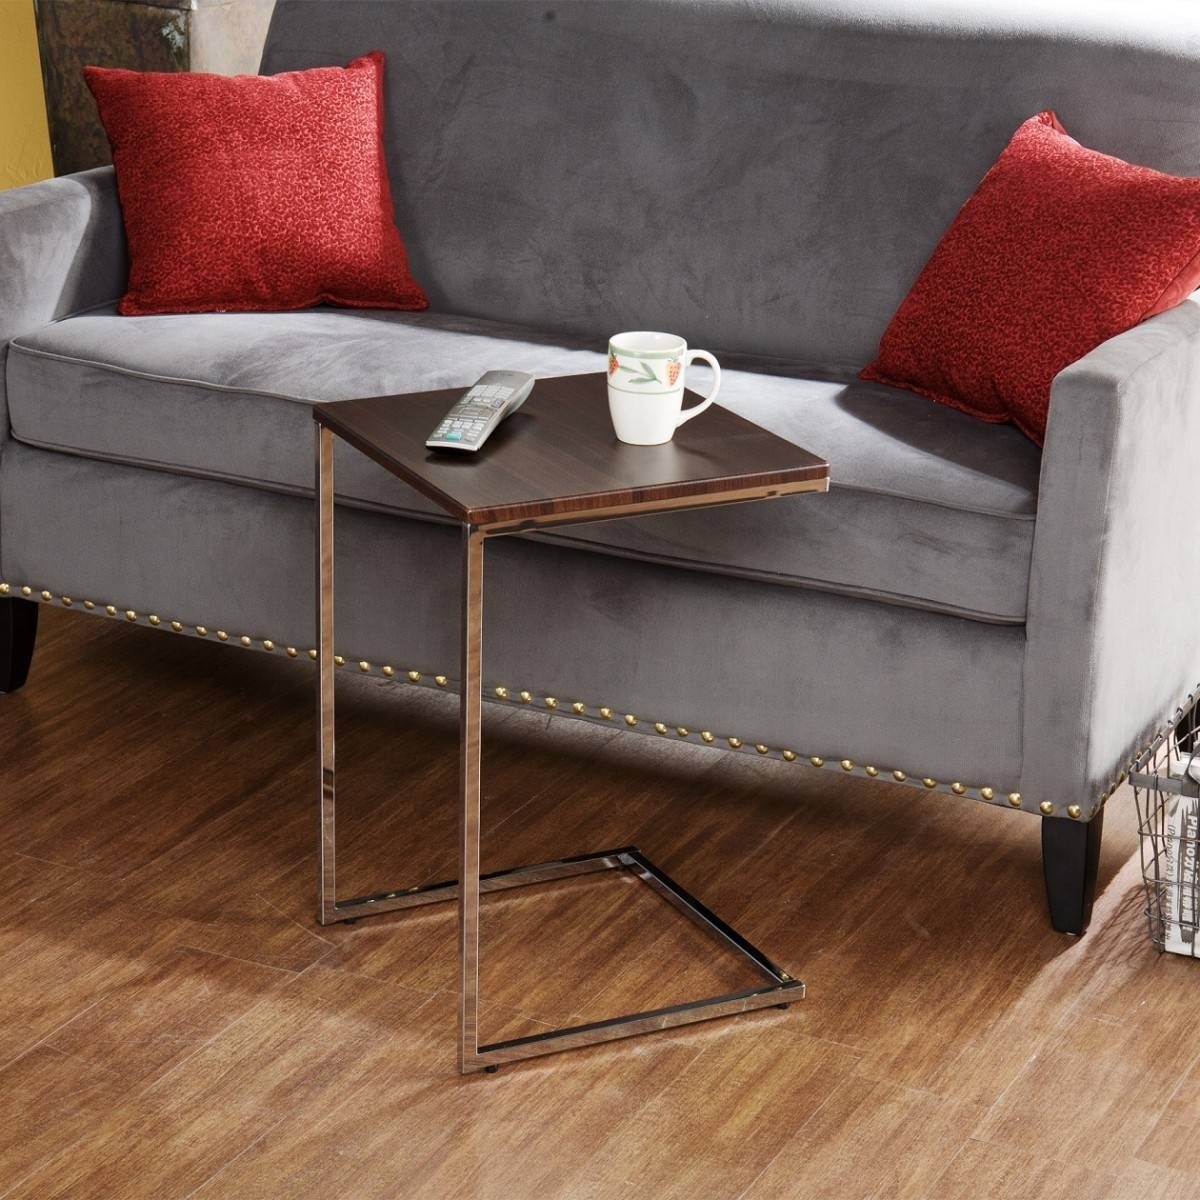 Modern C Coffee Table Tv Tray With Metal Stand And Wooden Top Ideas regarding C Coffee Tables (Image 21 of 30)